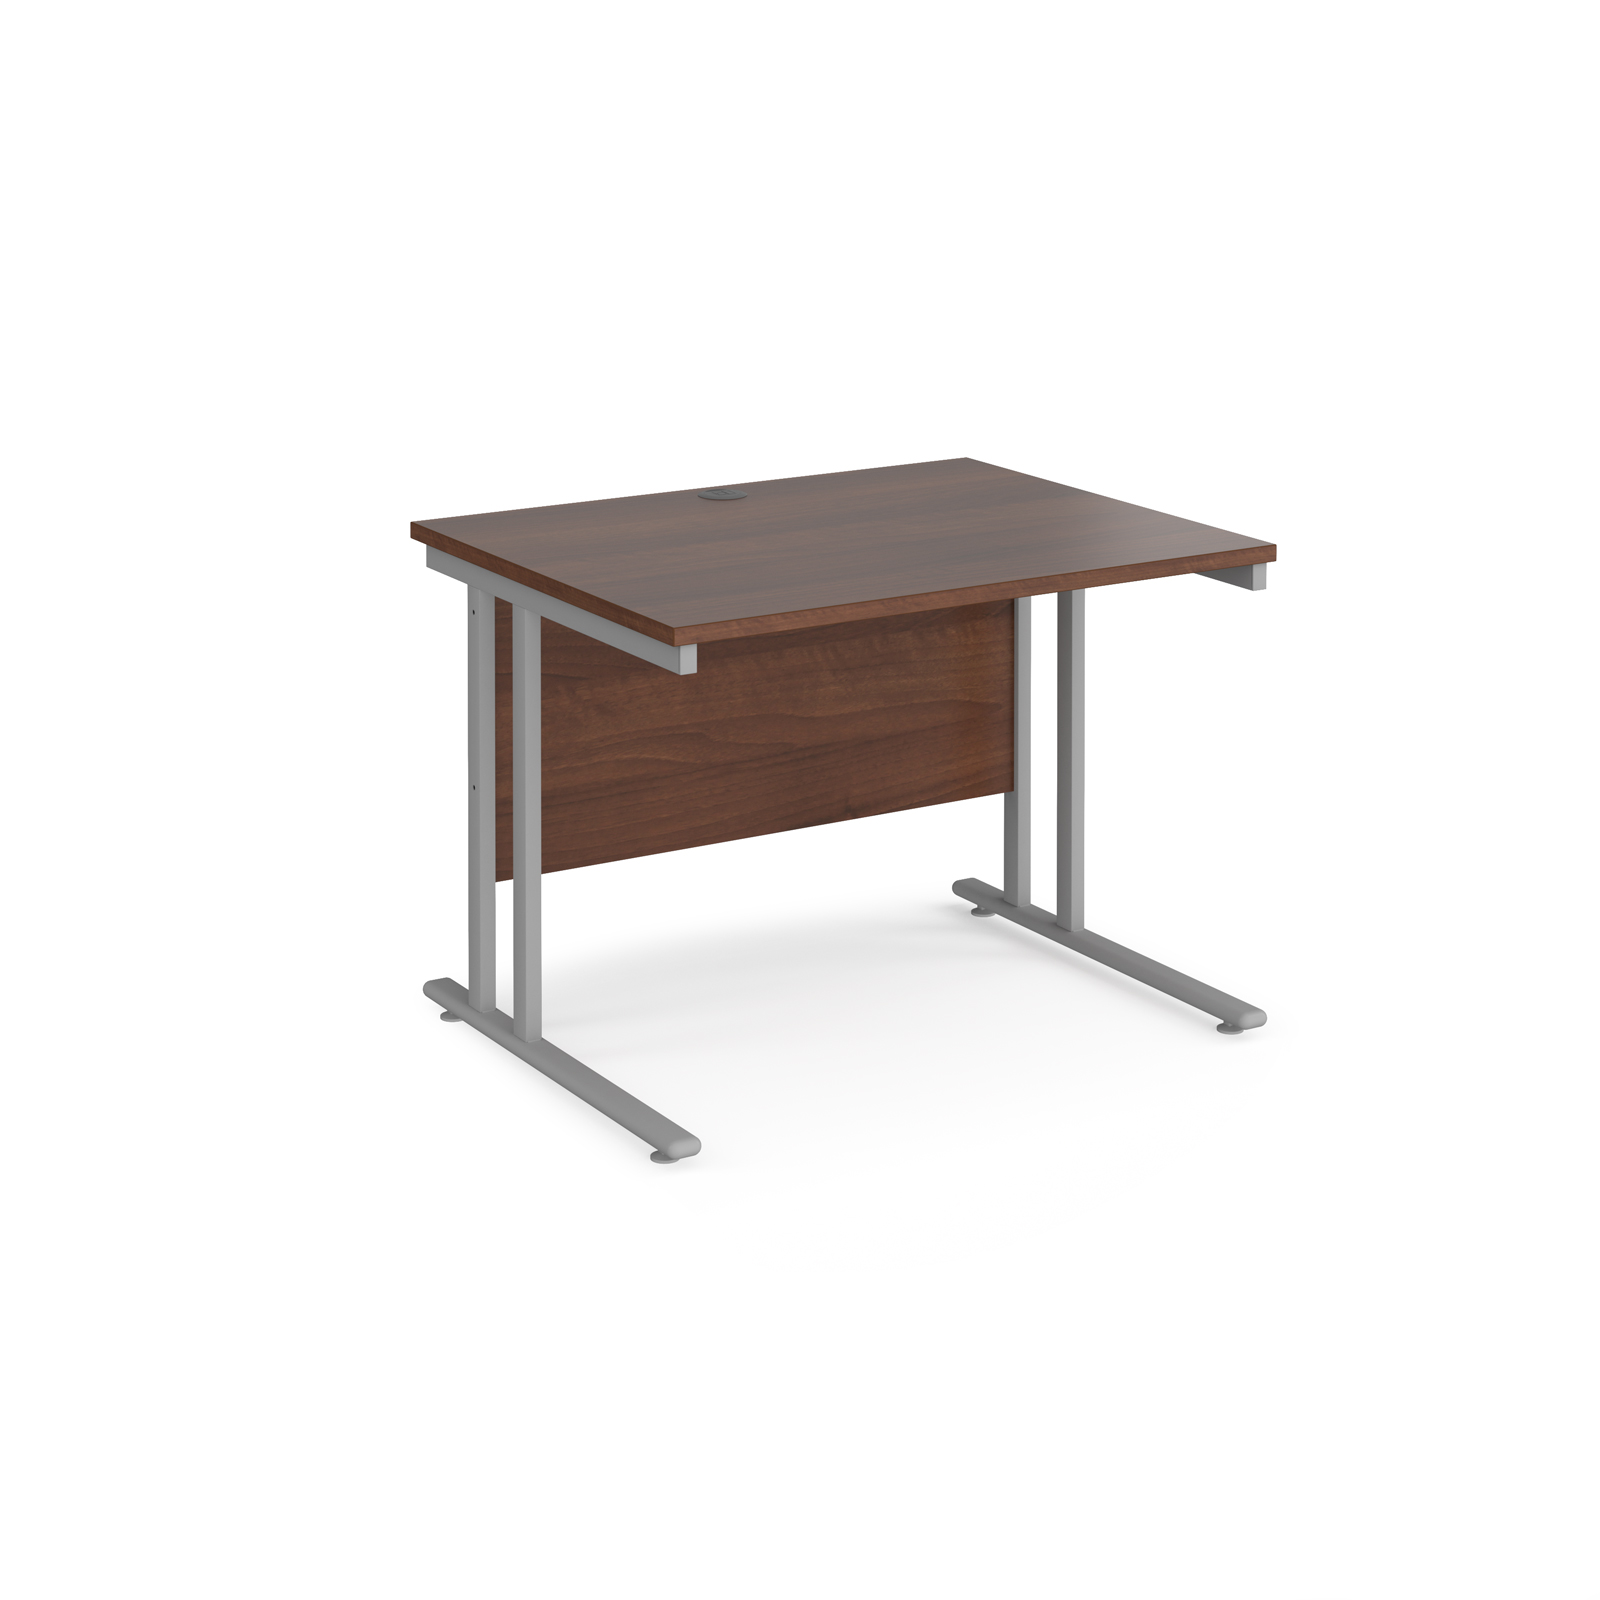 Rectangular Desks Maestro 25 straight desk 1000mm x 800mm - silver cantilever leg frame, walnut top